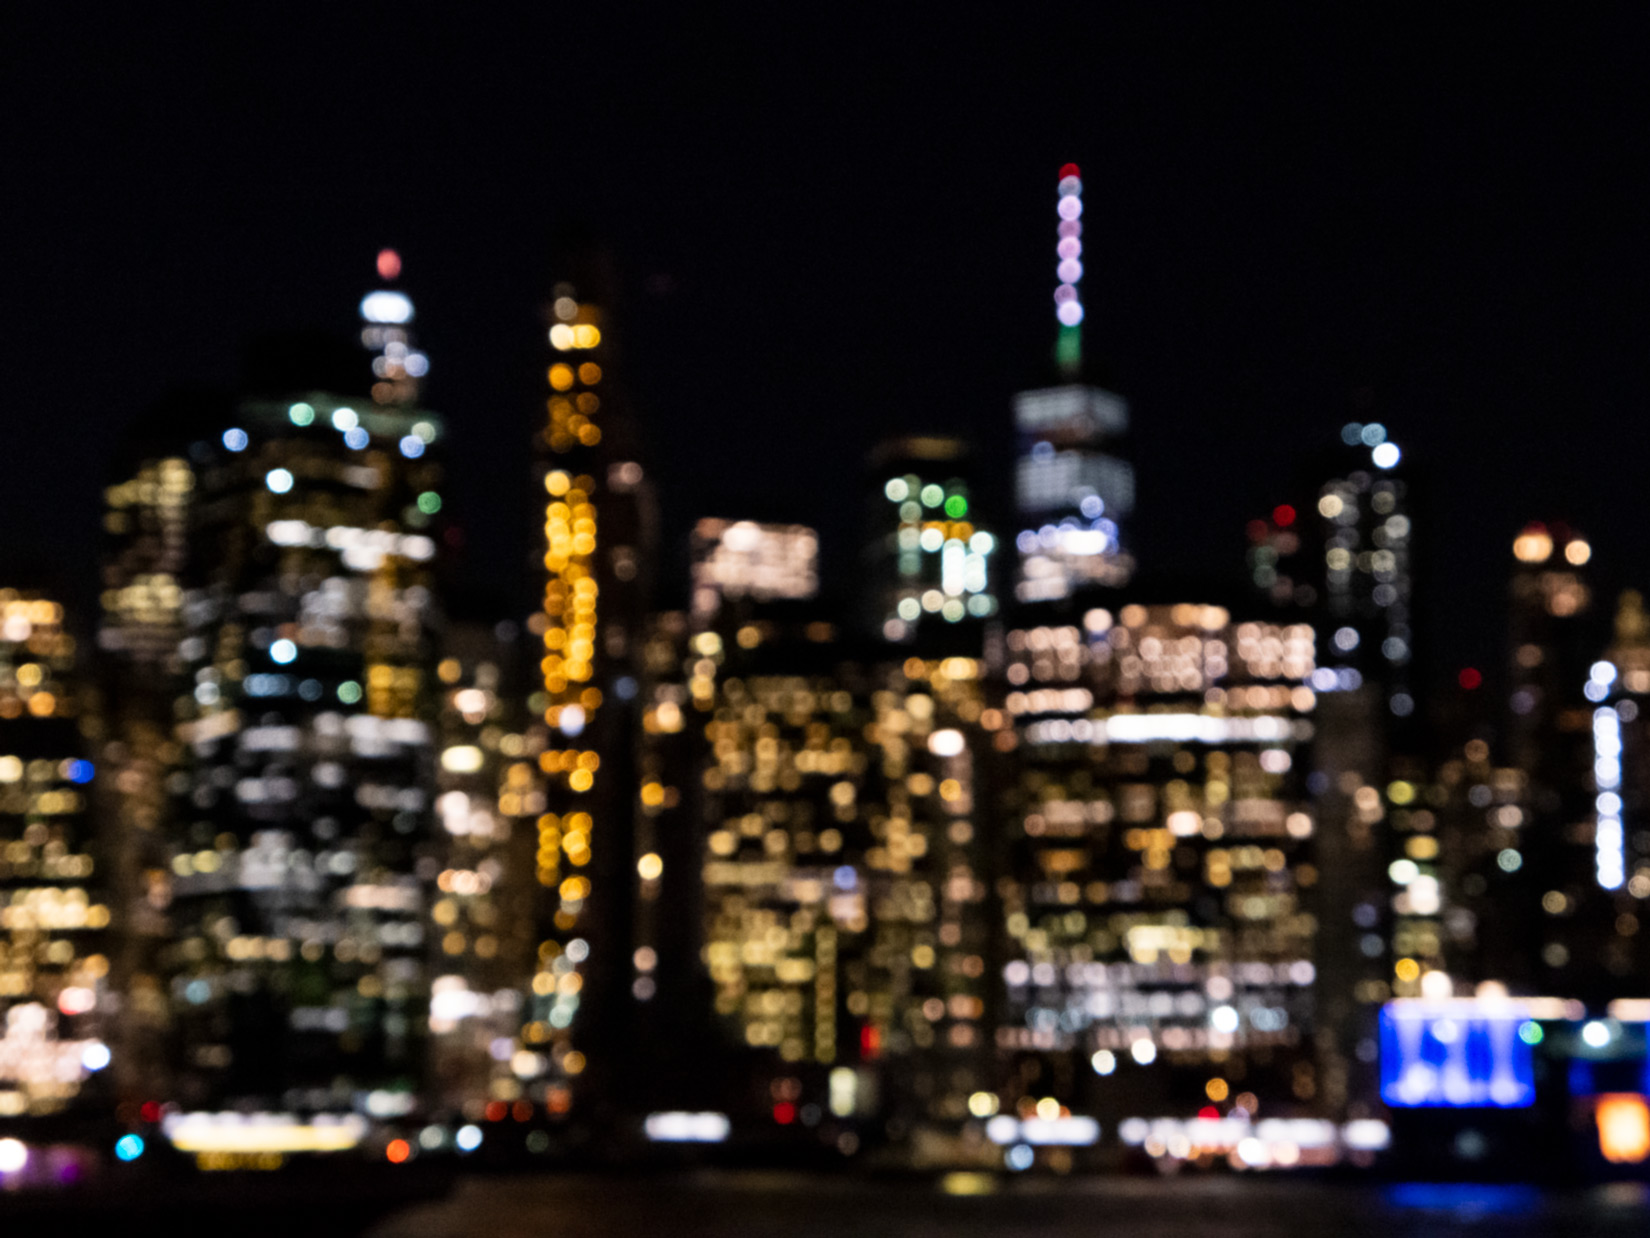 Blurred City Skyline